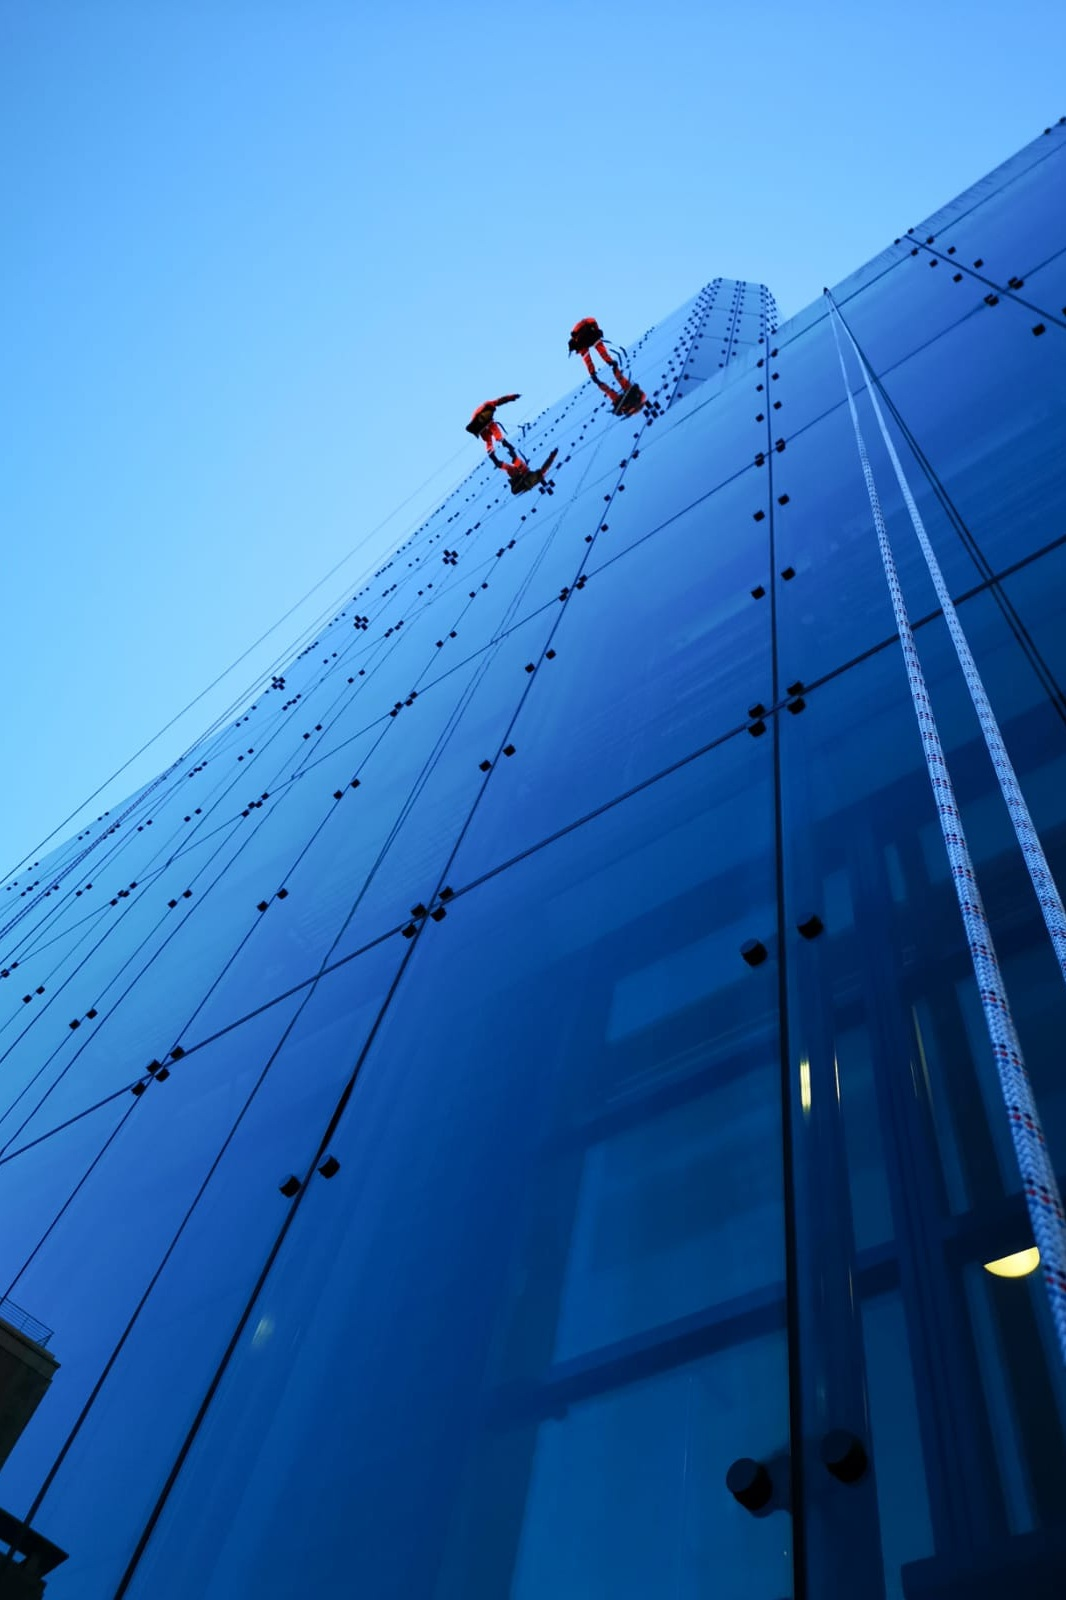 Vertex Rope Access - Vertex Rope Access are one of the UK's leading working-at-height experts in the survey and repair of building envelopes and structures